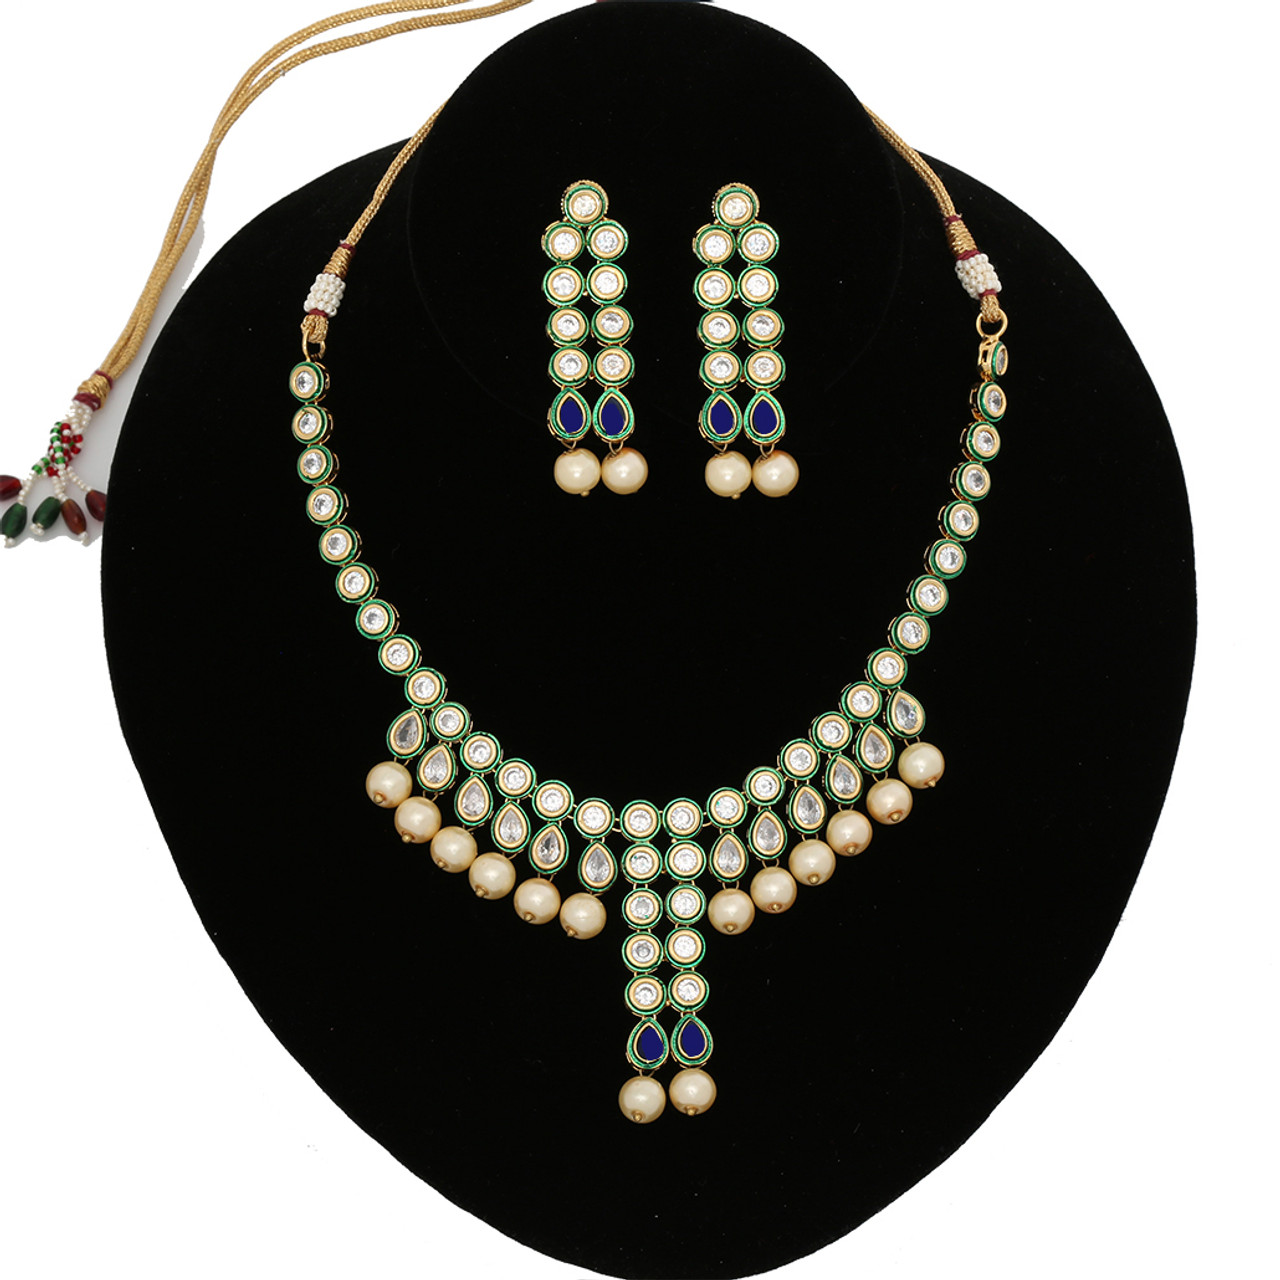 28b37ca6ee5af Blue and White Kundan Stone Pearl Beads Necklace Earrings Fashion Handmade  Set